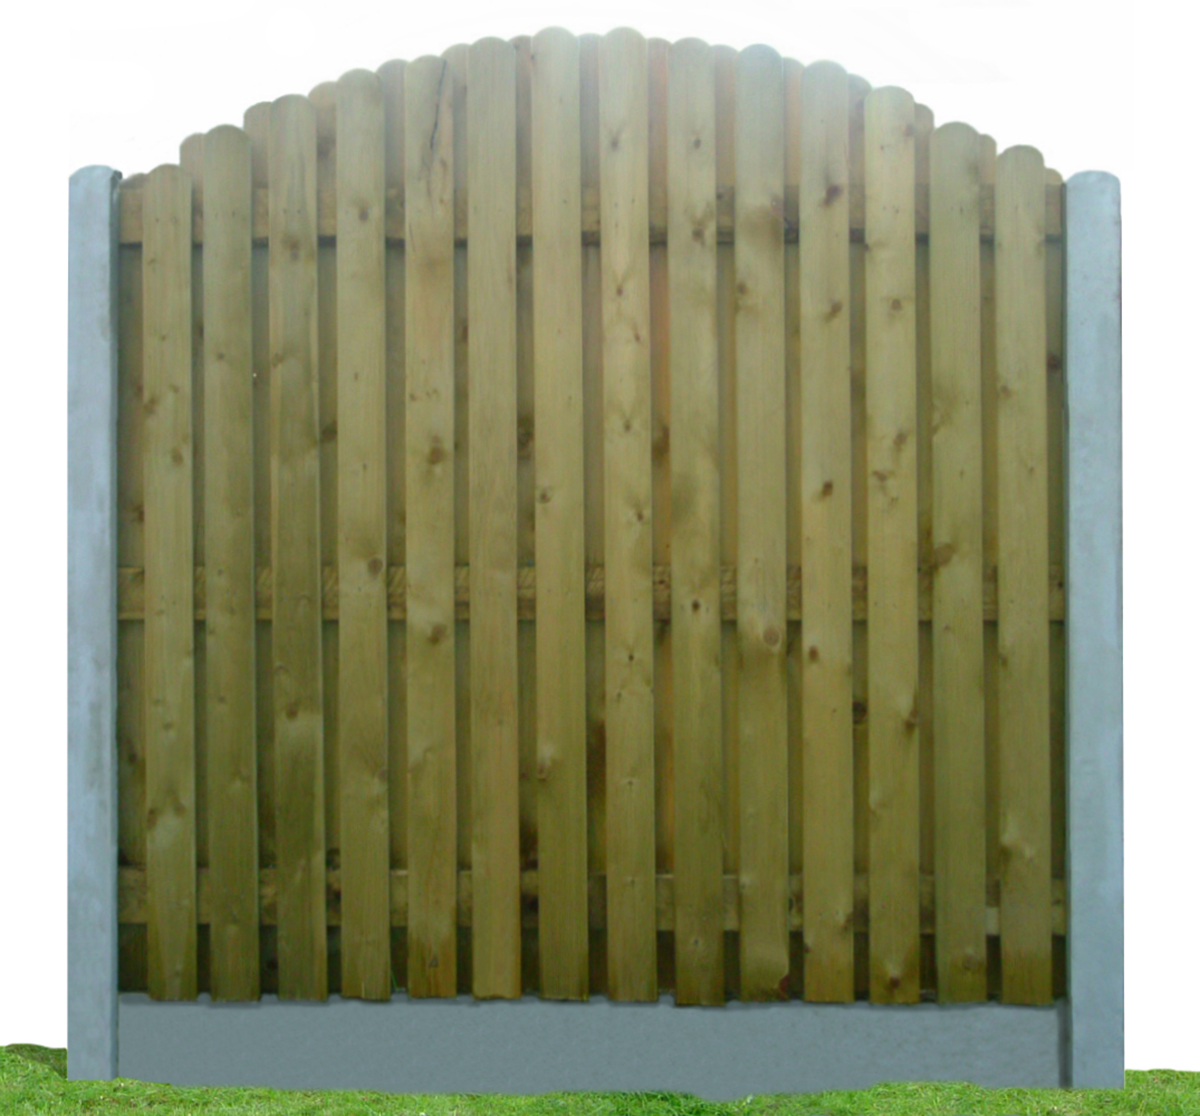 Fencing Ireland | Dublin Wicklow Wexford Sheds Fencing